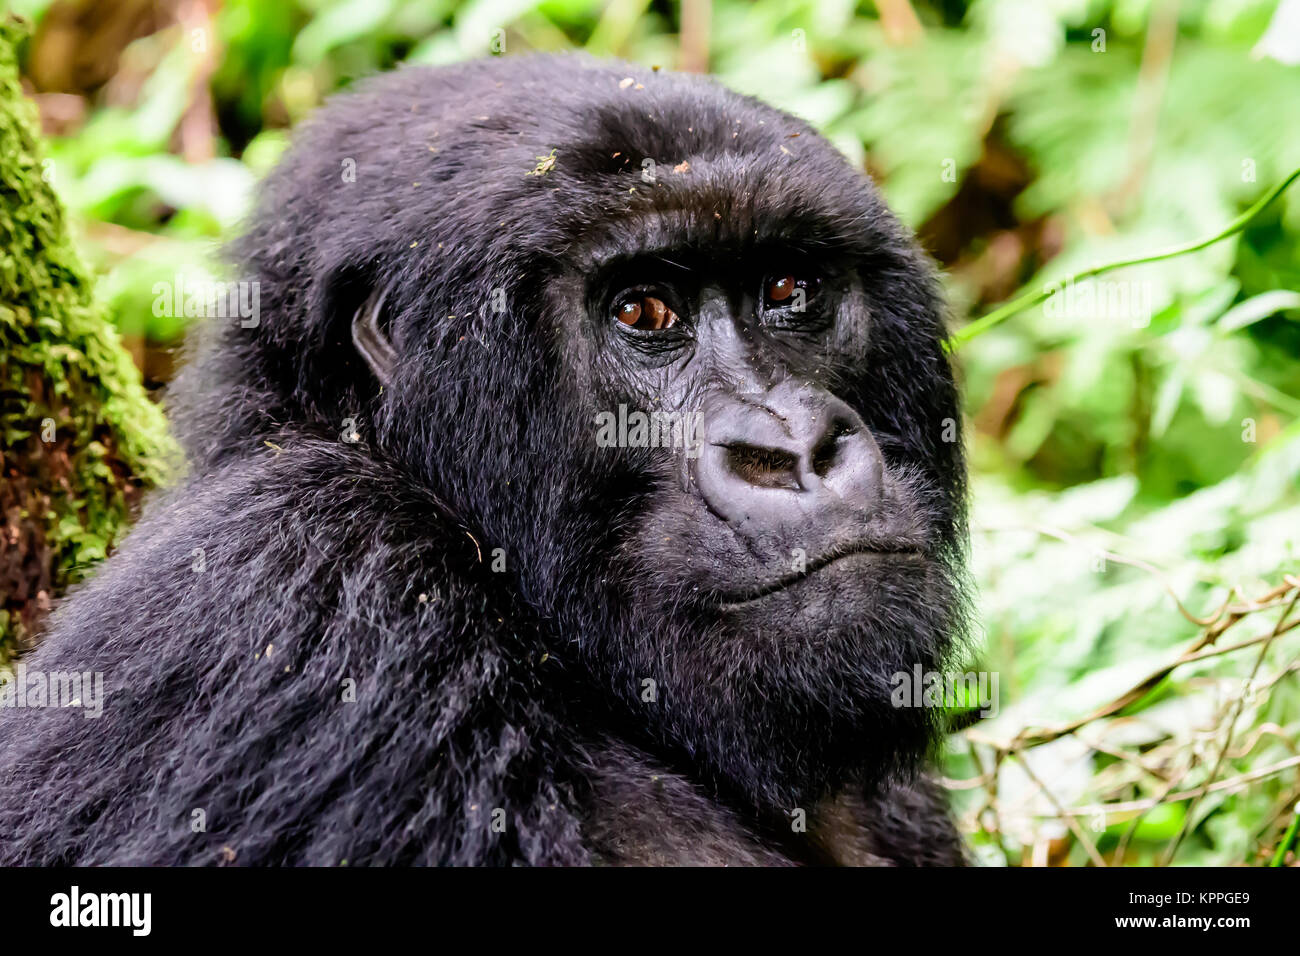 close up of the face of a mountain gorilla - Stock Image